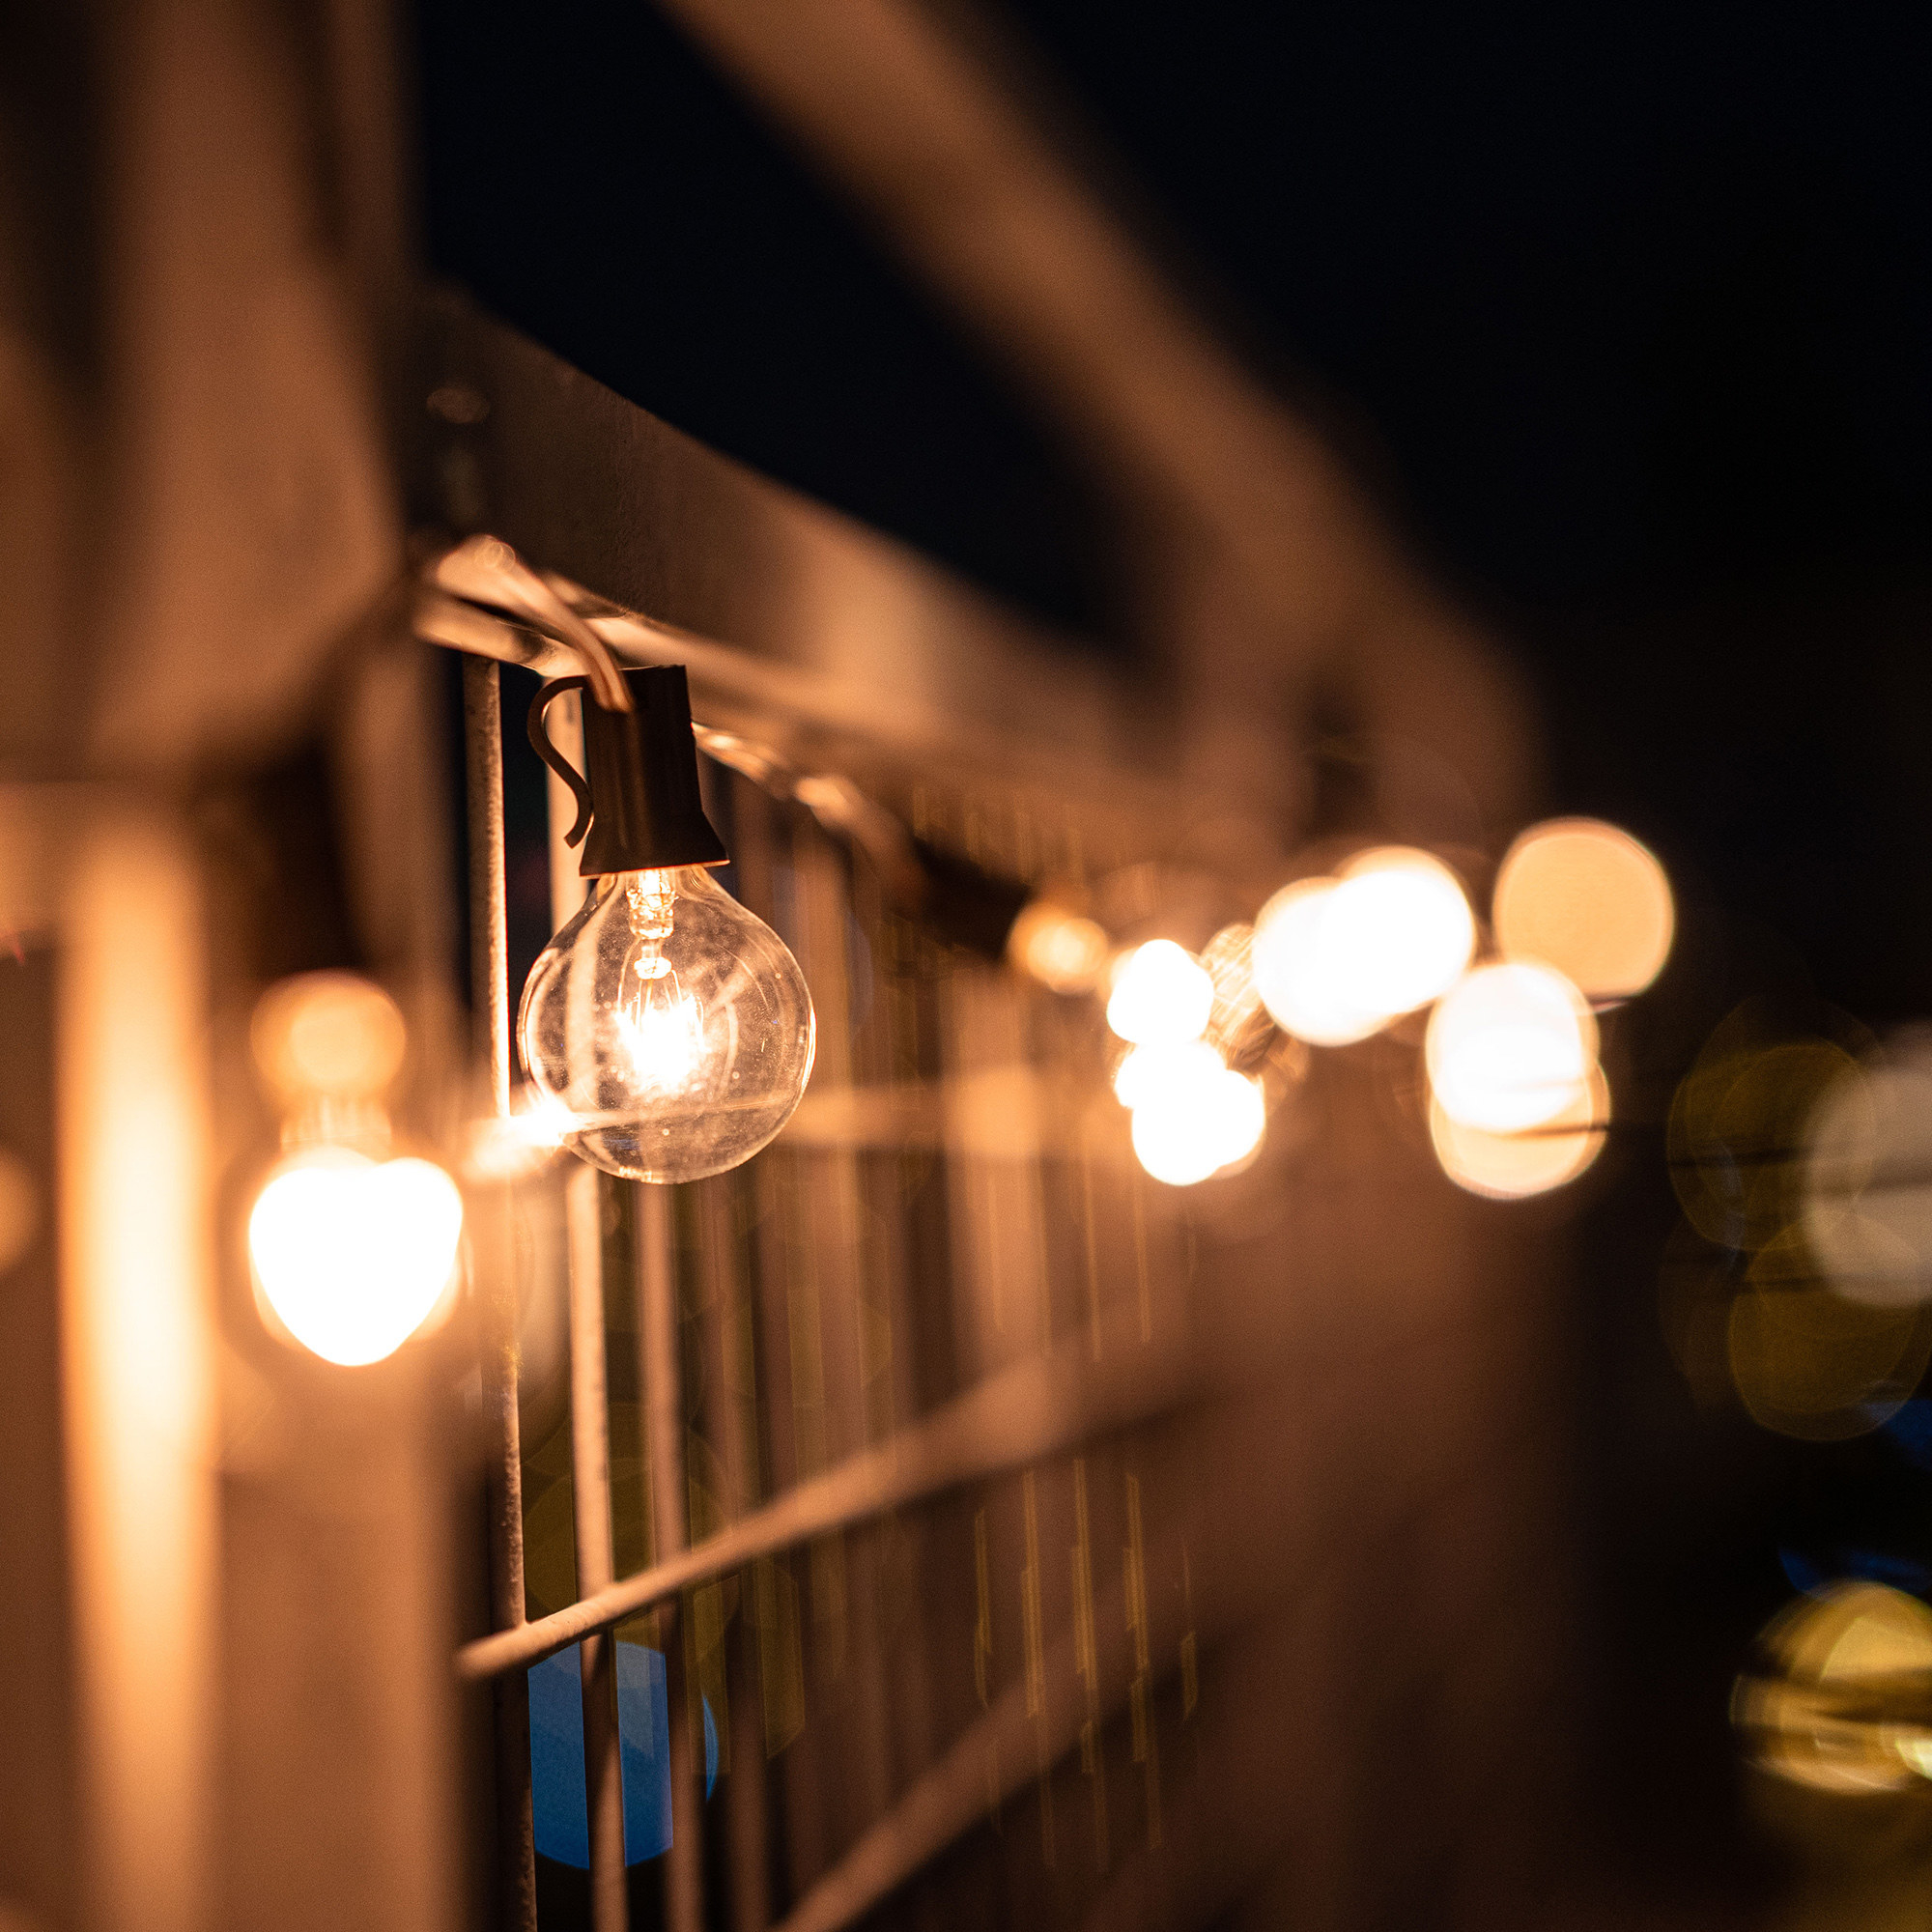 A set of lit-up brown outdoor string lights